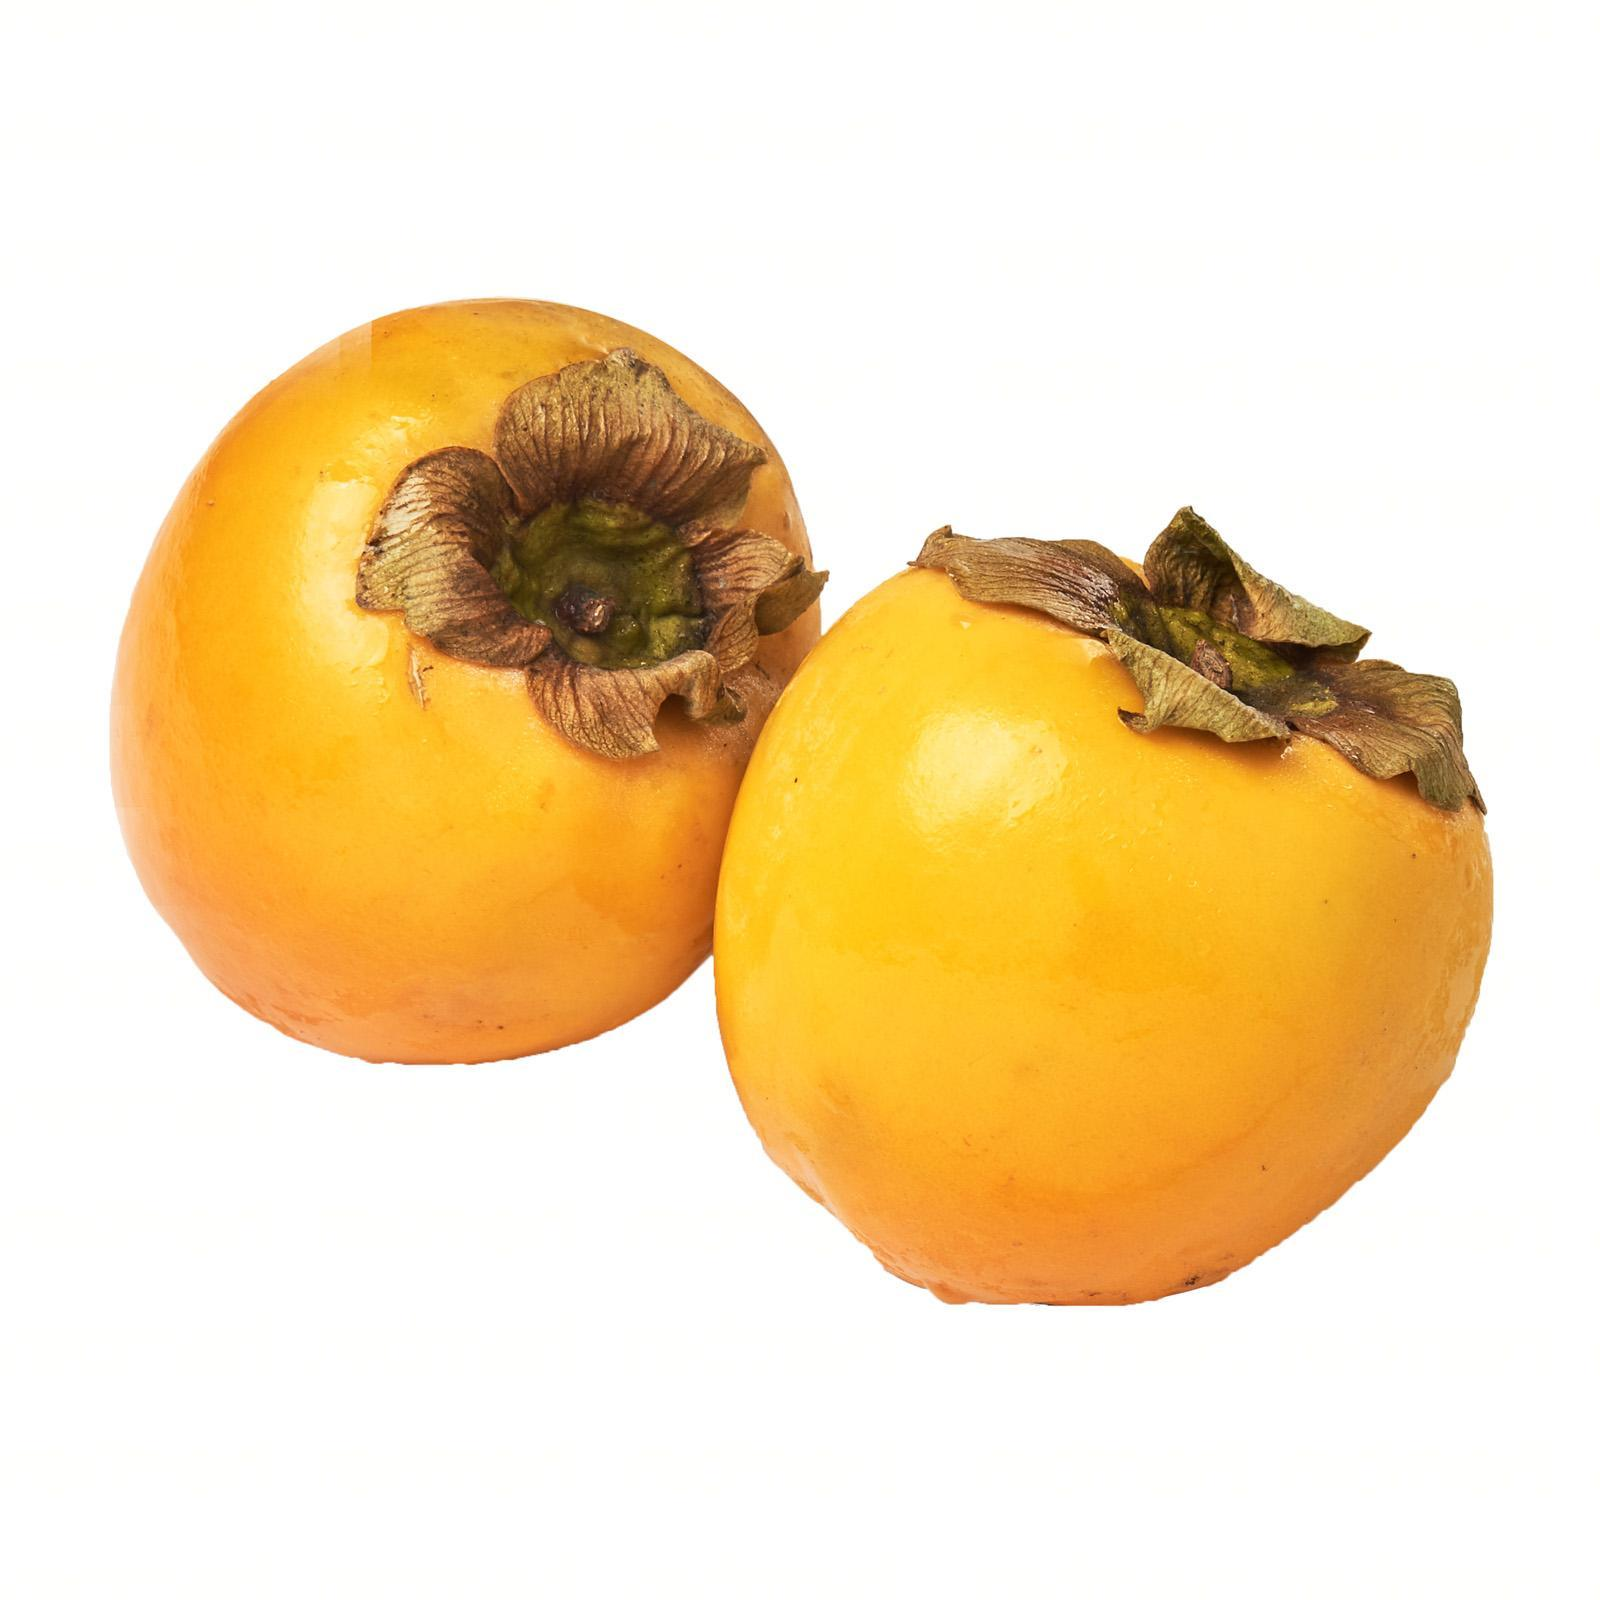 Spain Kaki Persimmon